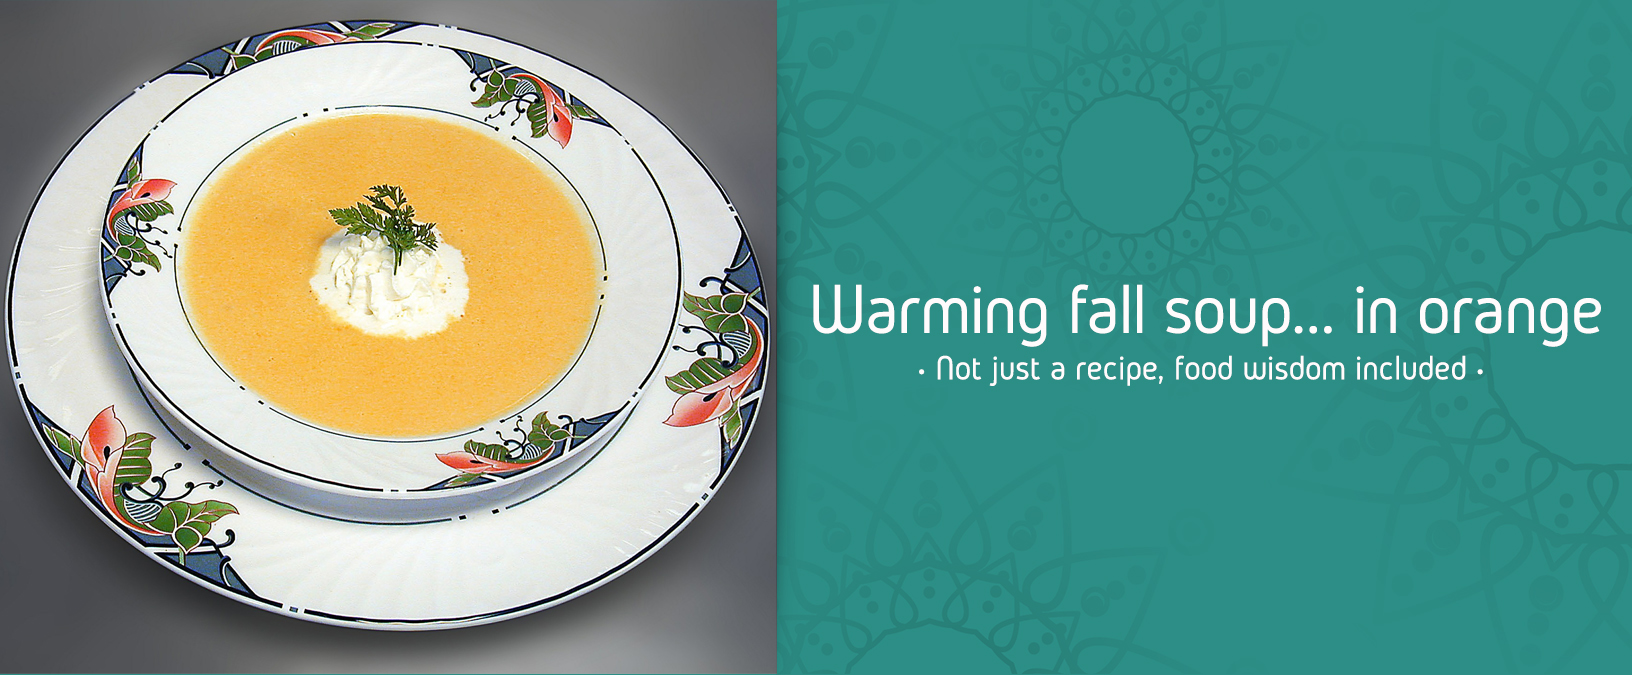 Warming Fall Soup